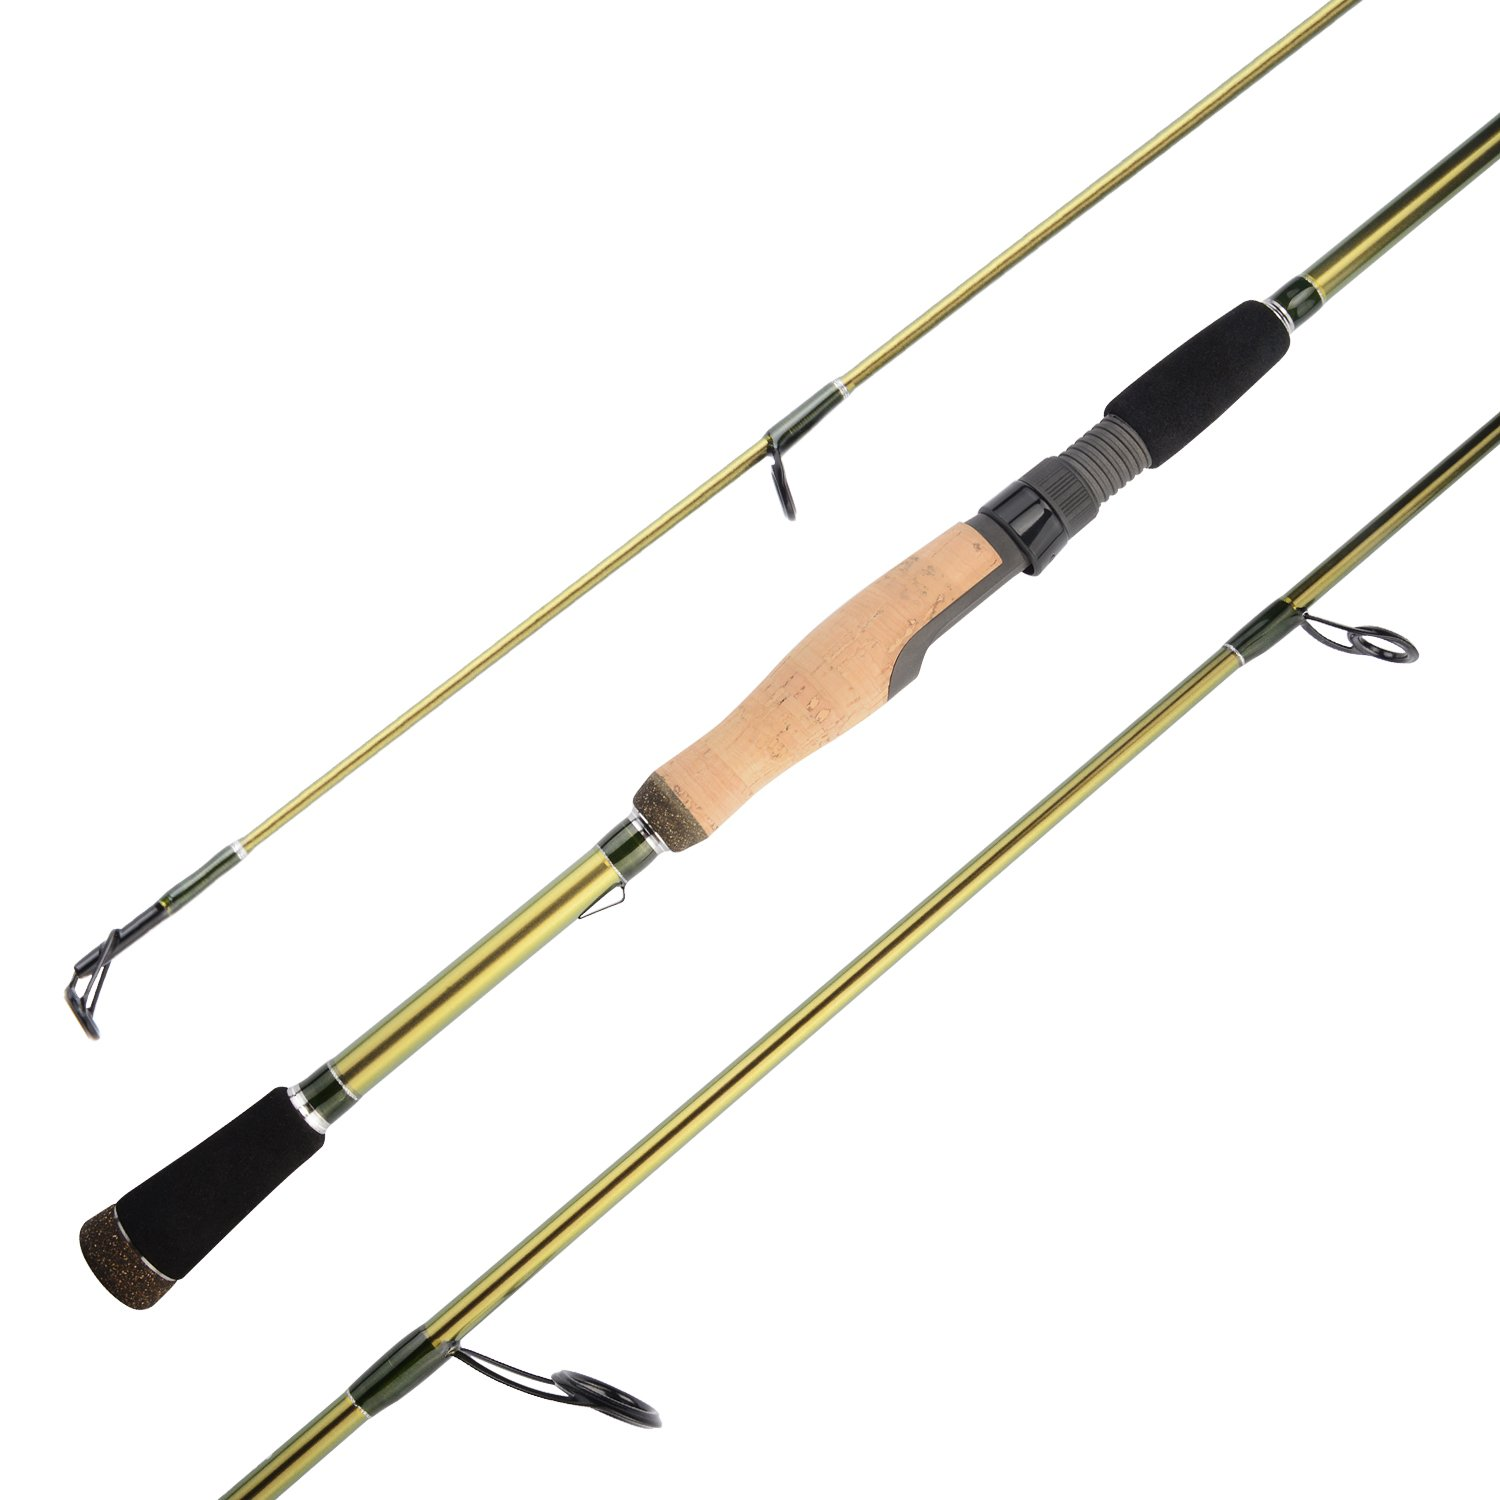 KastKing WideEye Spinning Fishing Rod